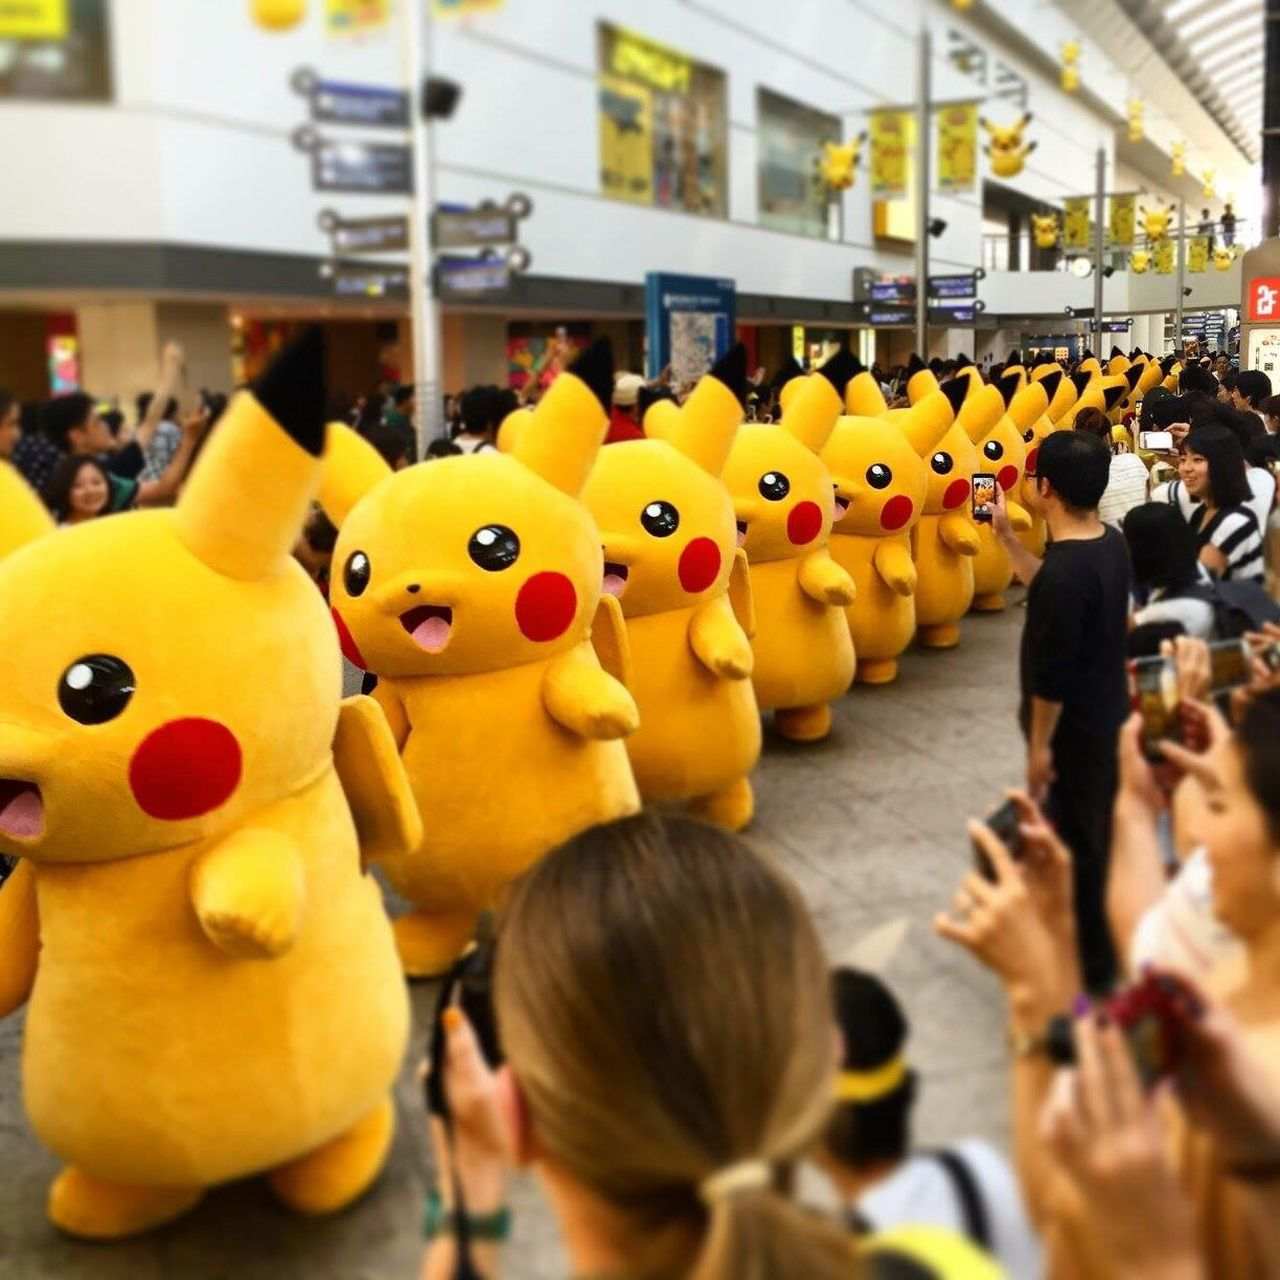 Pikapika Pikachu Pikachu Parade Sakuragicho Minatomirai Festival Pikachu Festival Cute KAWAII Yellow All Cute Everything Crowd Japan Nihon Thisisjapan EyeEmNewHere Yokohama Pokémon EyeEmNewHere